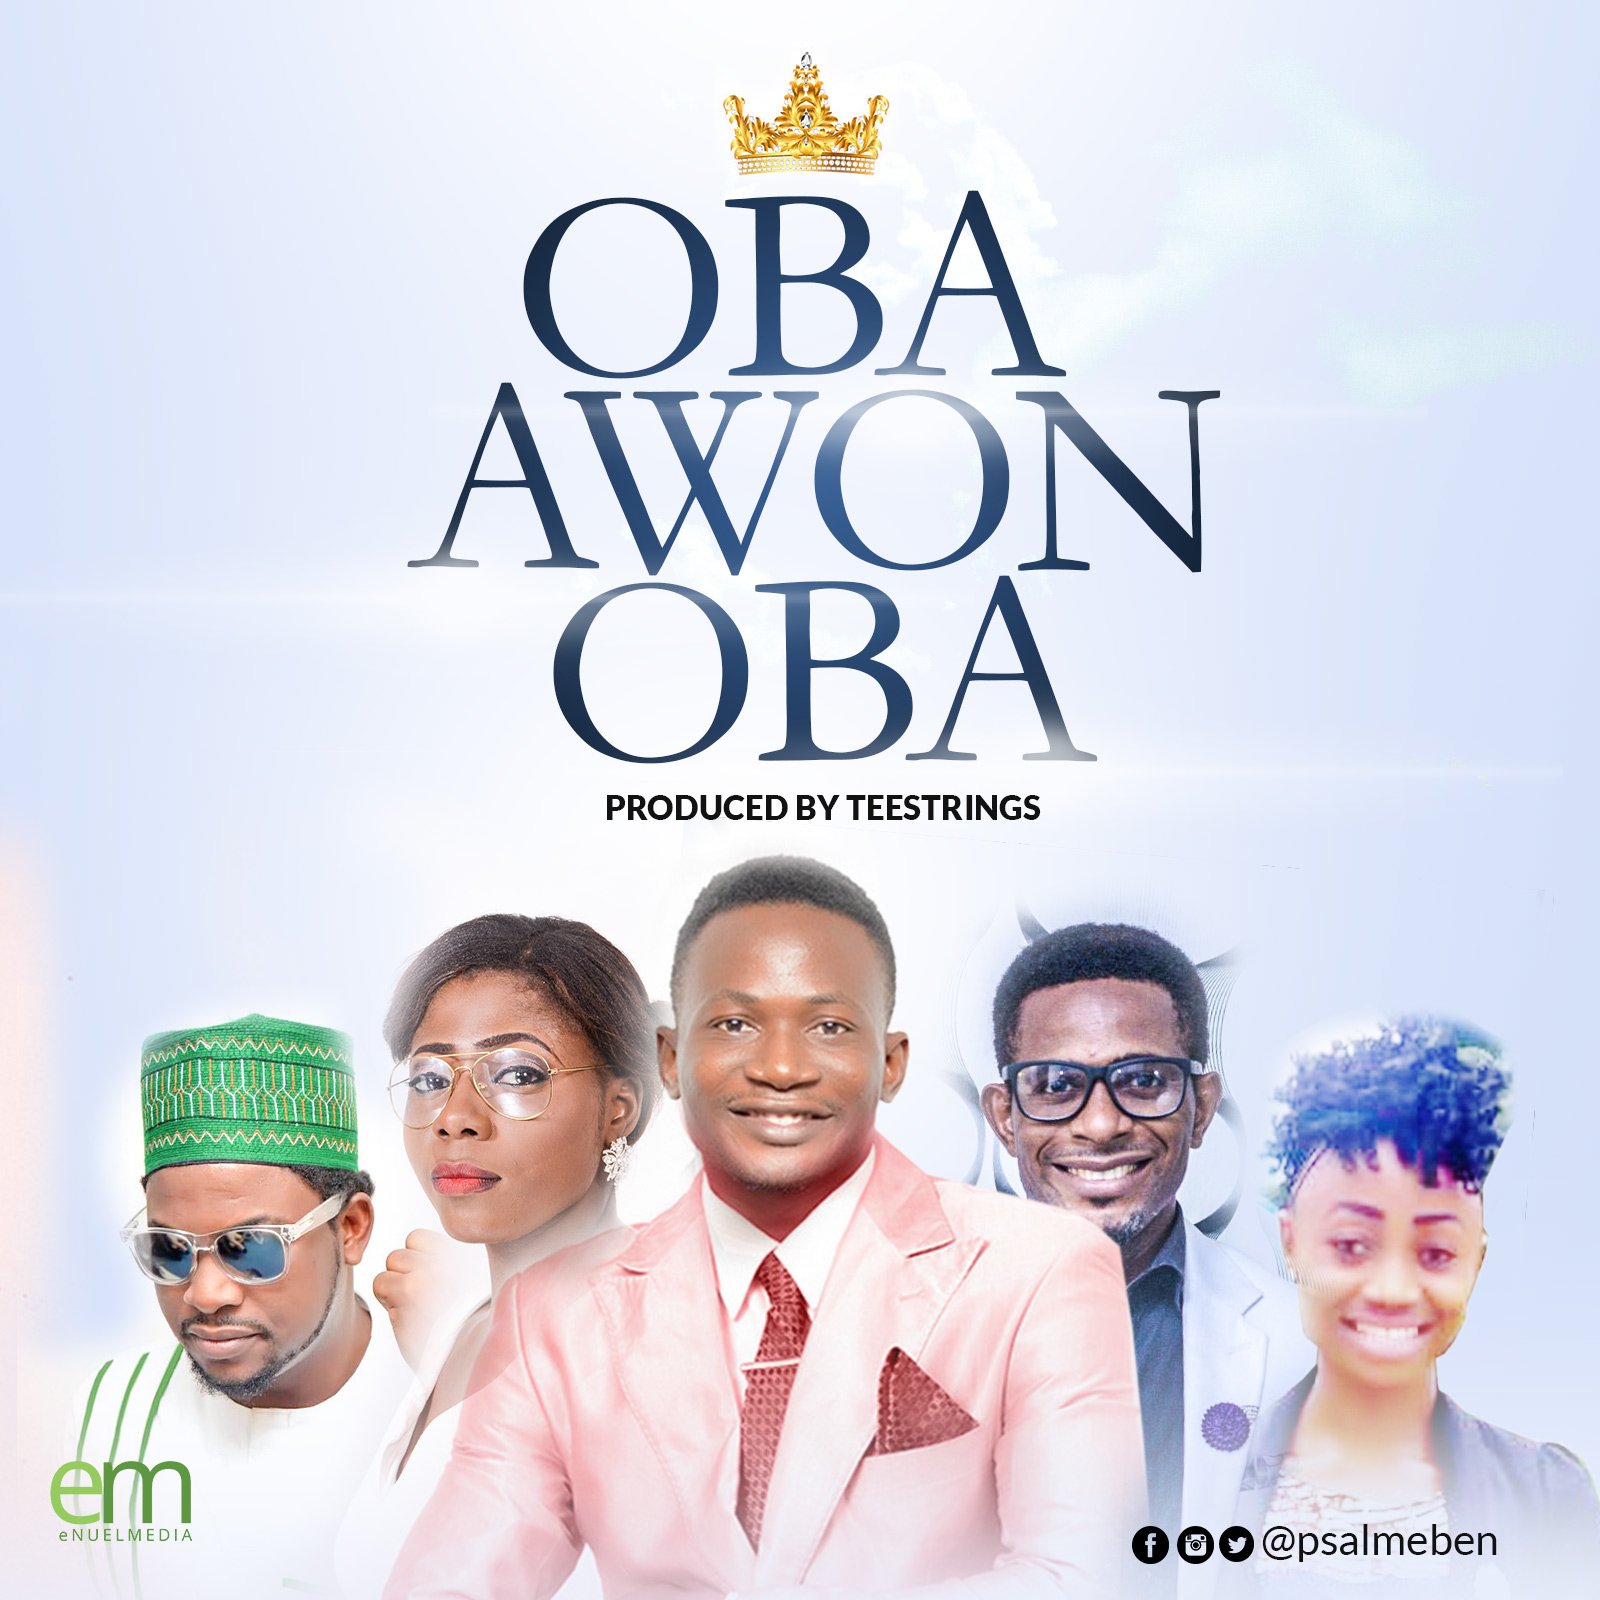 OBA AWON OBA BY PSALMEBEN FEAT. MARY, OLAWALE, FAVOUR AND MIKE OLAS